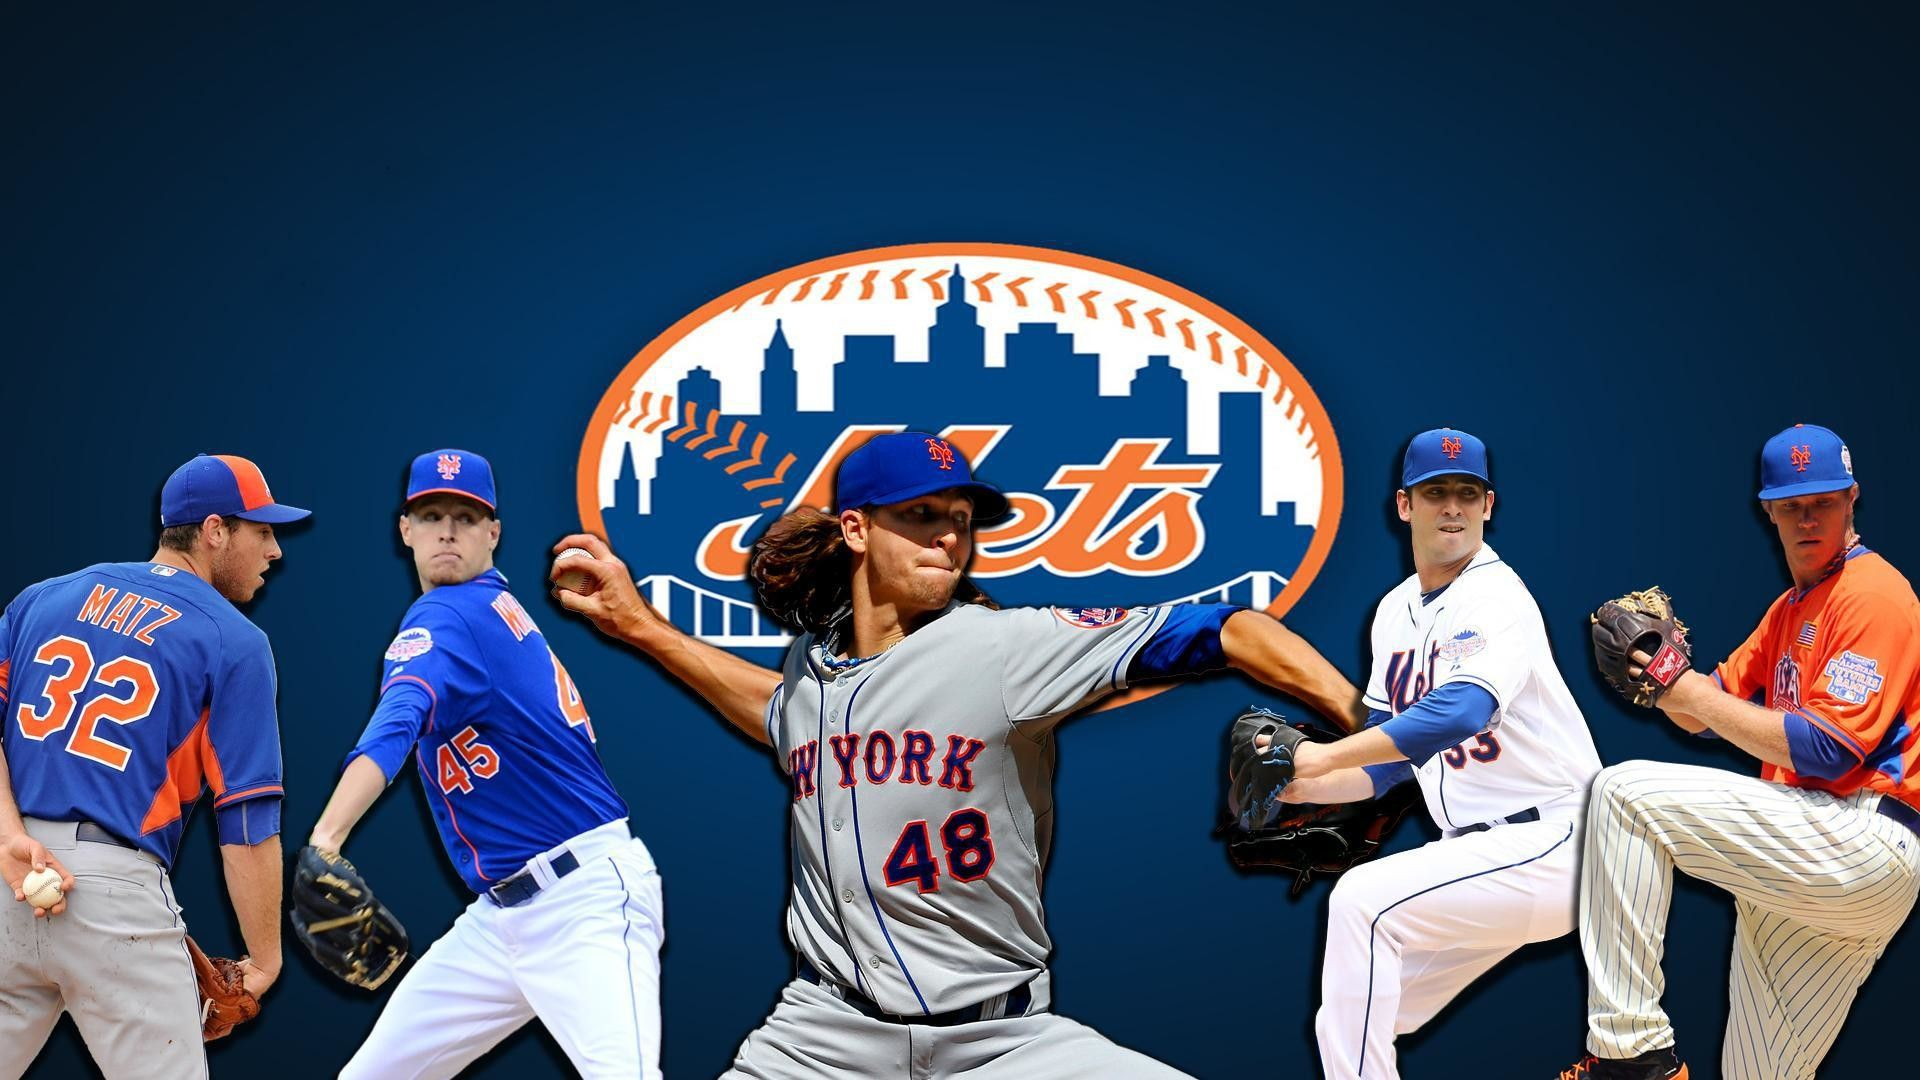 New York Mets Tickets Cheap New York Mets Baseball Mets New York Mets